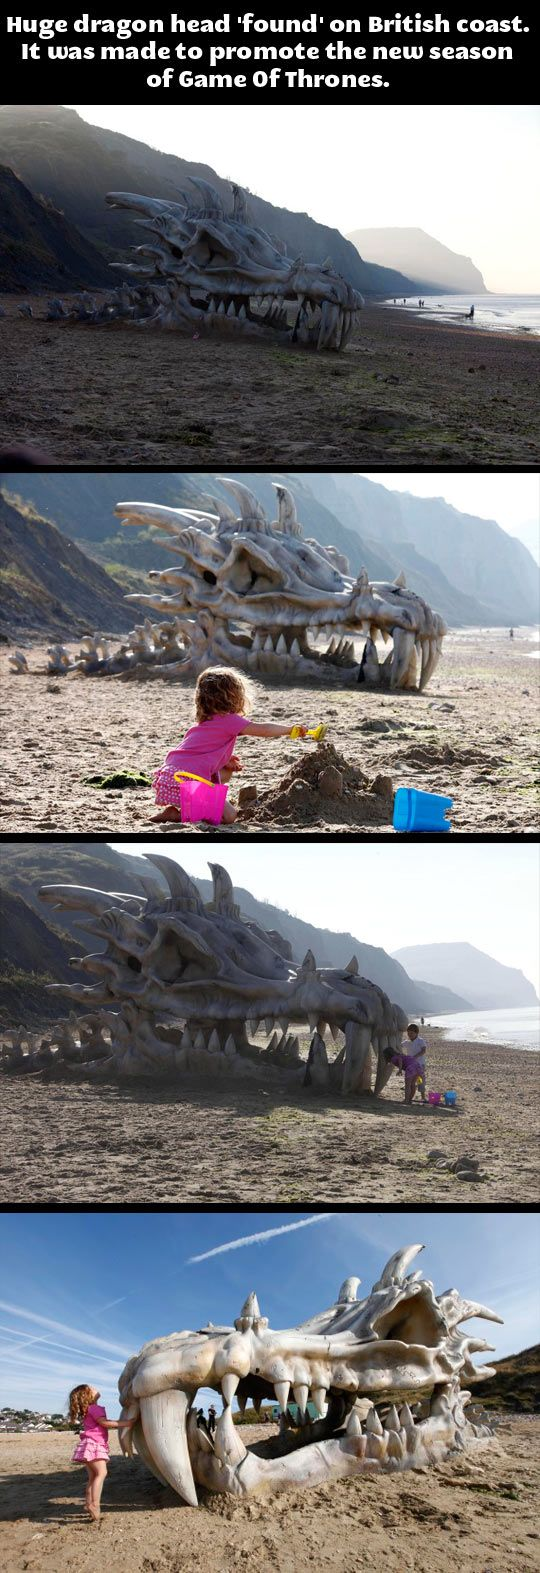 This is just so cool, I don't even watch Game of Thrones. But imagine finding this on the beach! It'd be like... This should be turned into a playground. An entire giant dragon skeleton playground, with swings and everything. :D